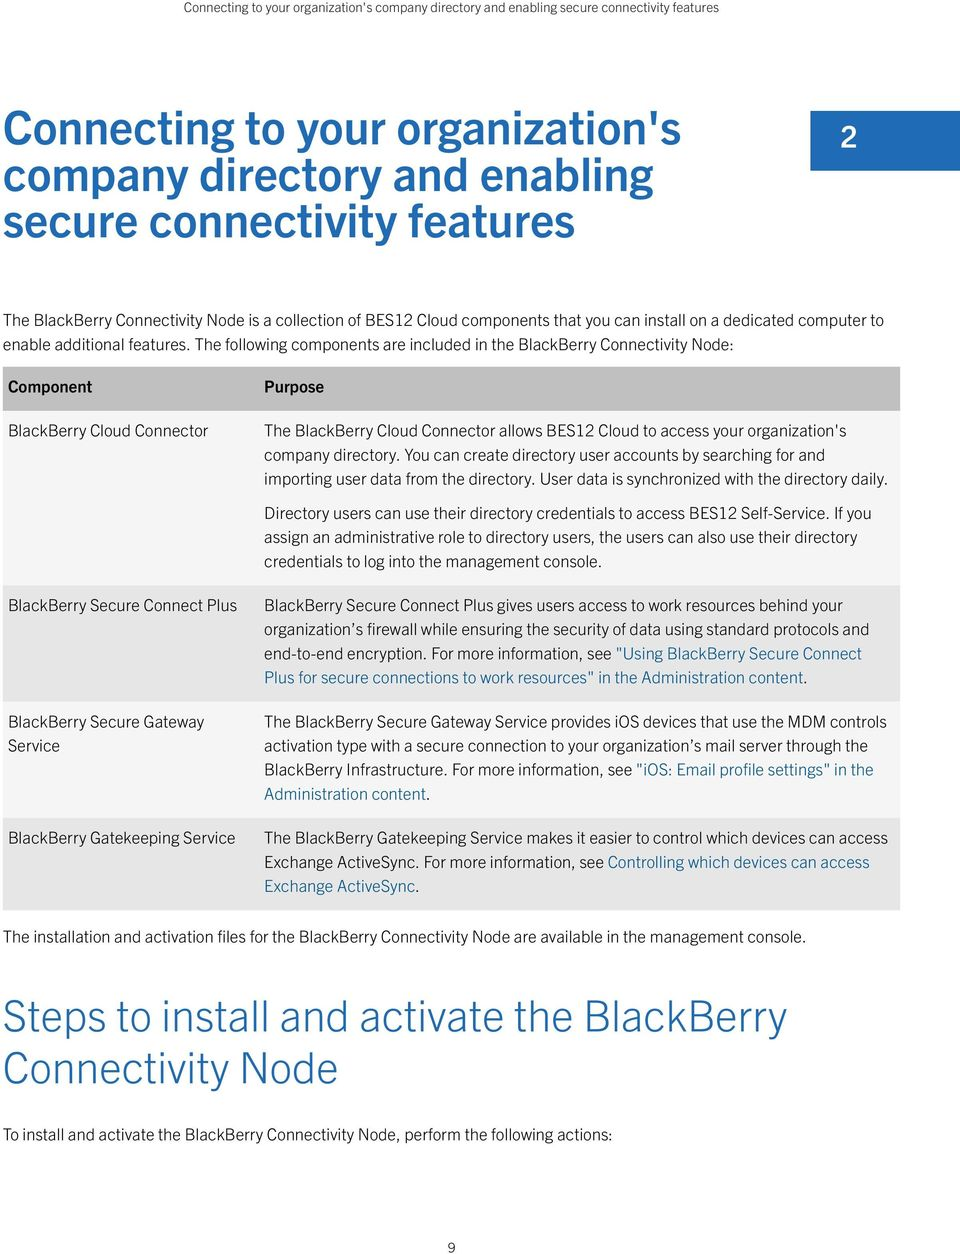 The following components are included in the BlackBerry Connectivity Node: Component BlackBerry Cloud Connector Purpose The BlackBerry Cloud Connector allows BES12 Cloud to access your organization's